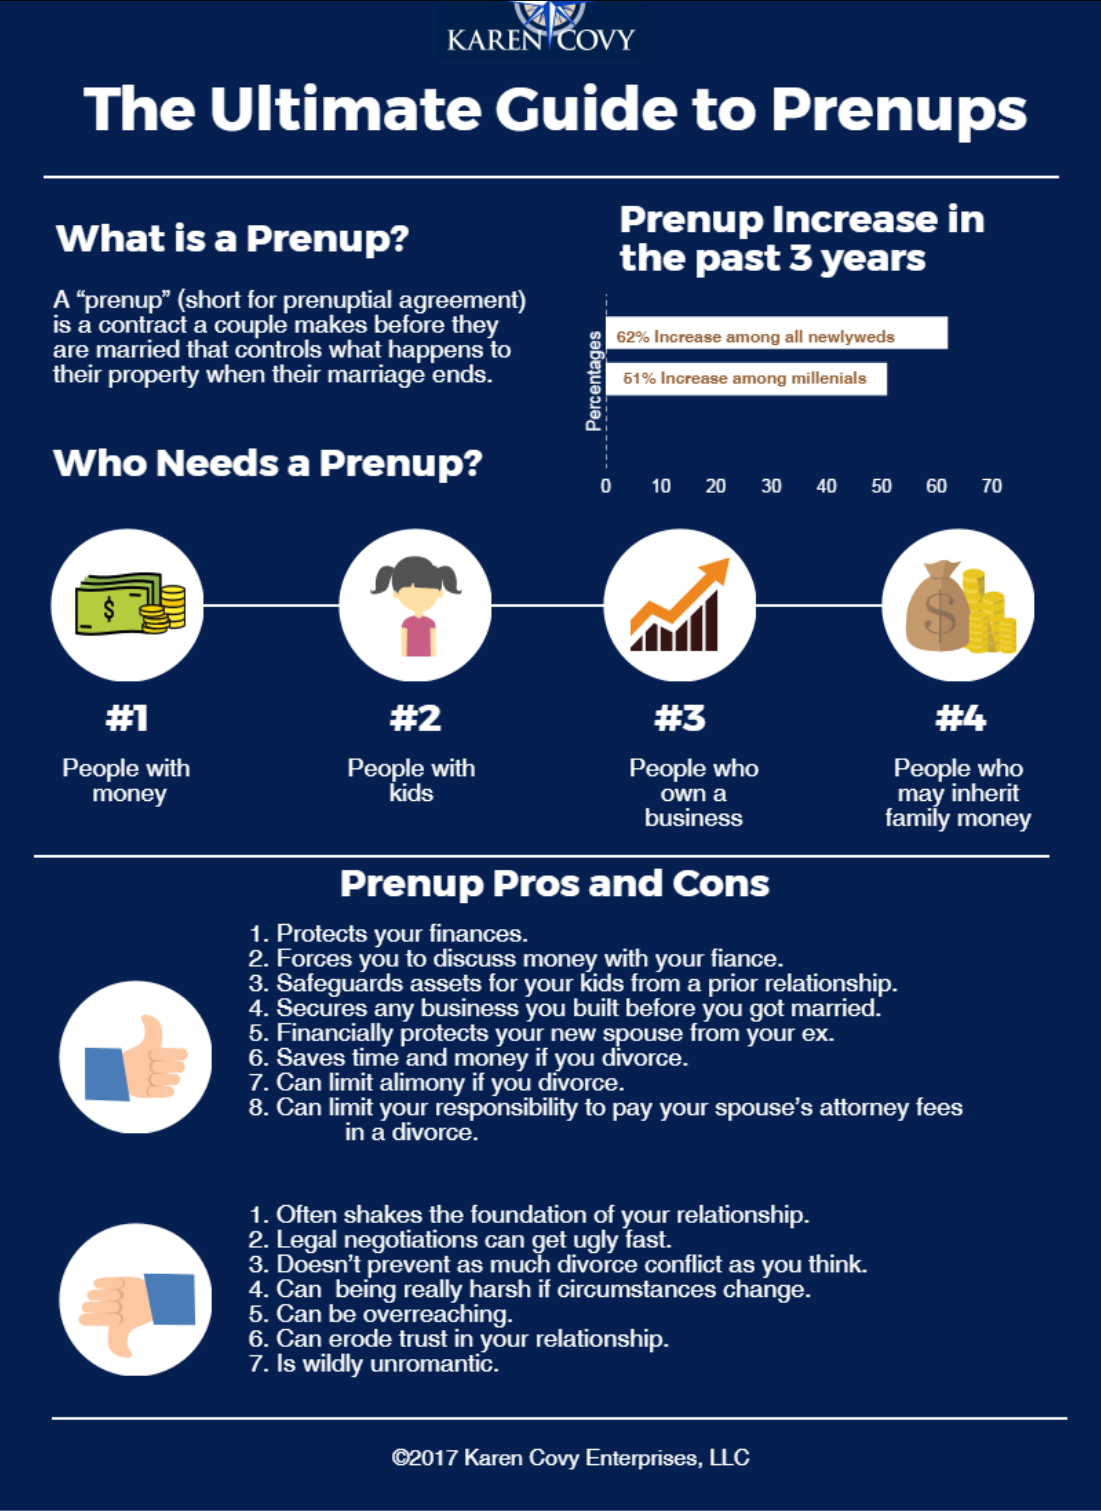 The Ultimate Guide to Prenups: Pros, Cons and How a Prenup Works